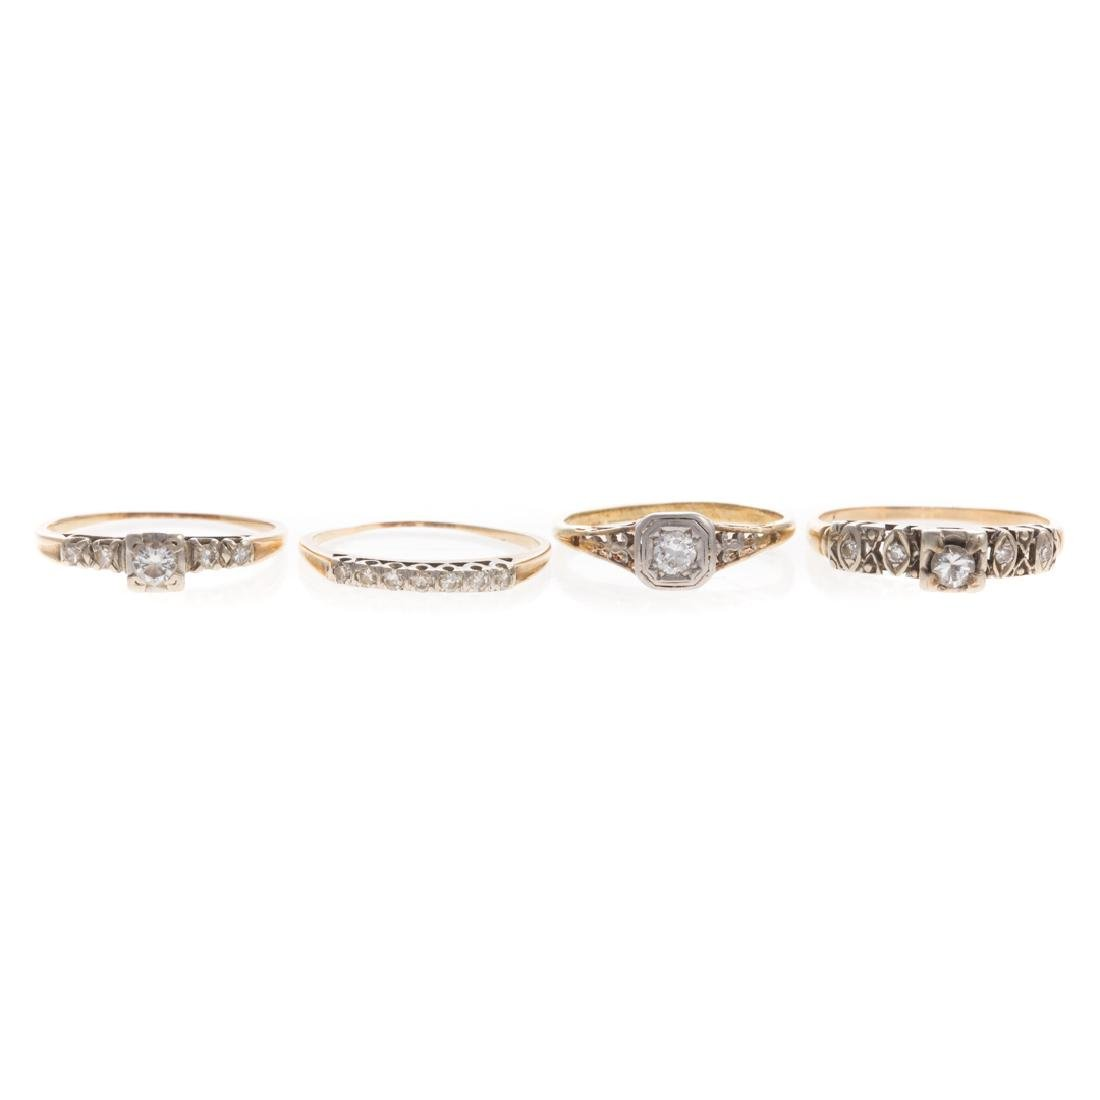 A Collection of Vintage Diamond Engagement Rings